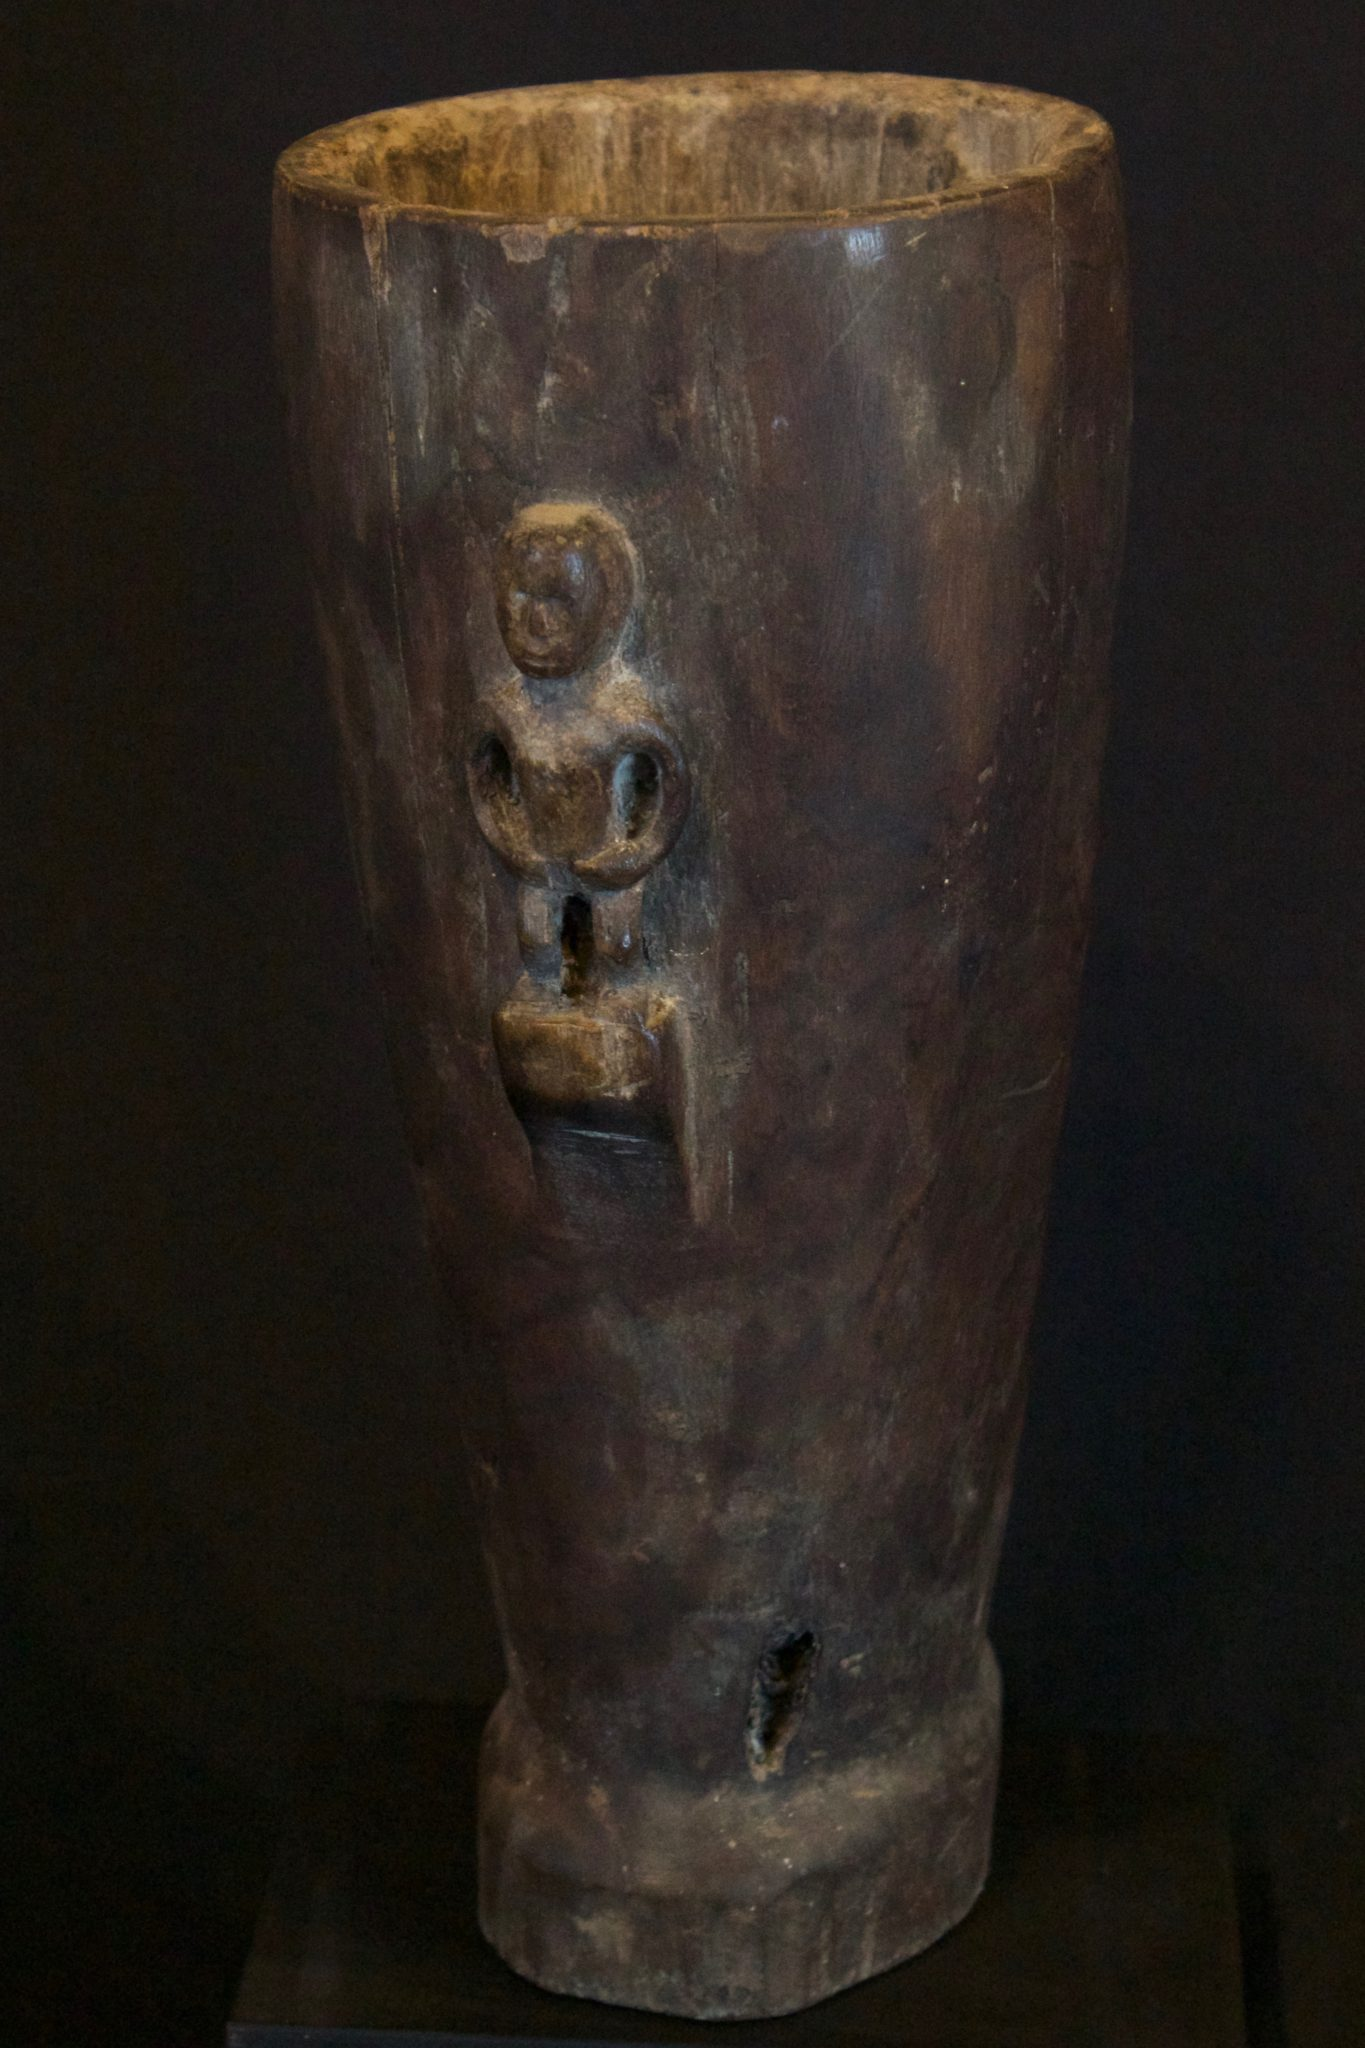 "Shaman Medicine Mortar (rare), Lesser Sunda Islands, Indonesia, Early 20th c, Wood. Preparing medicines using a pestle to grind, 10 ¾"" x 4"" x 4 ½"", $425."